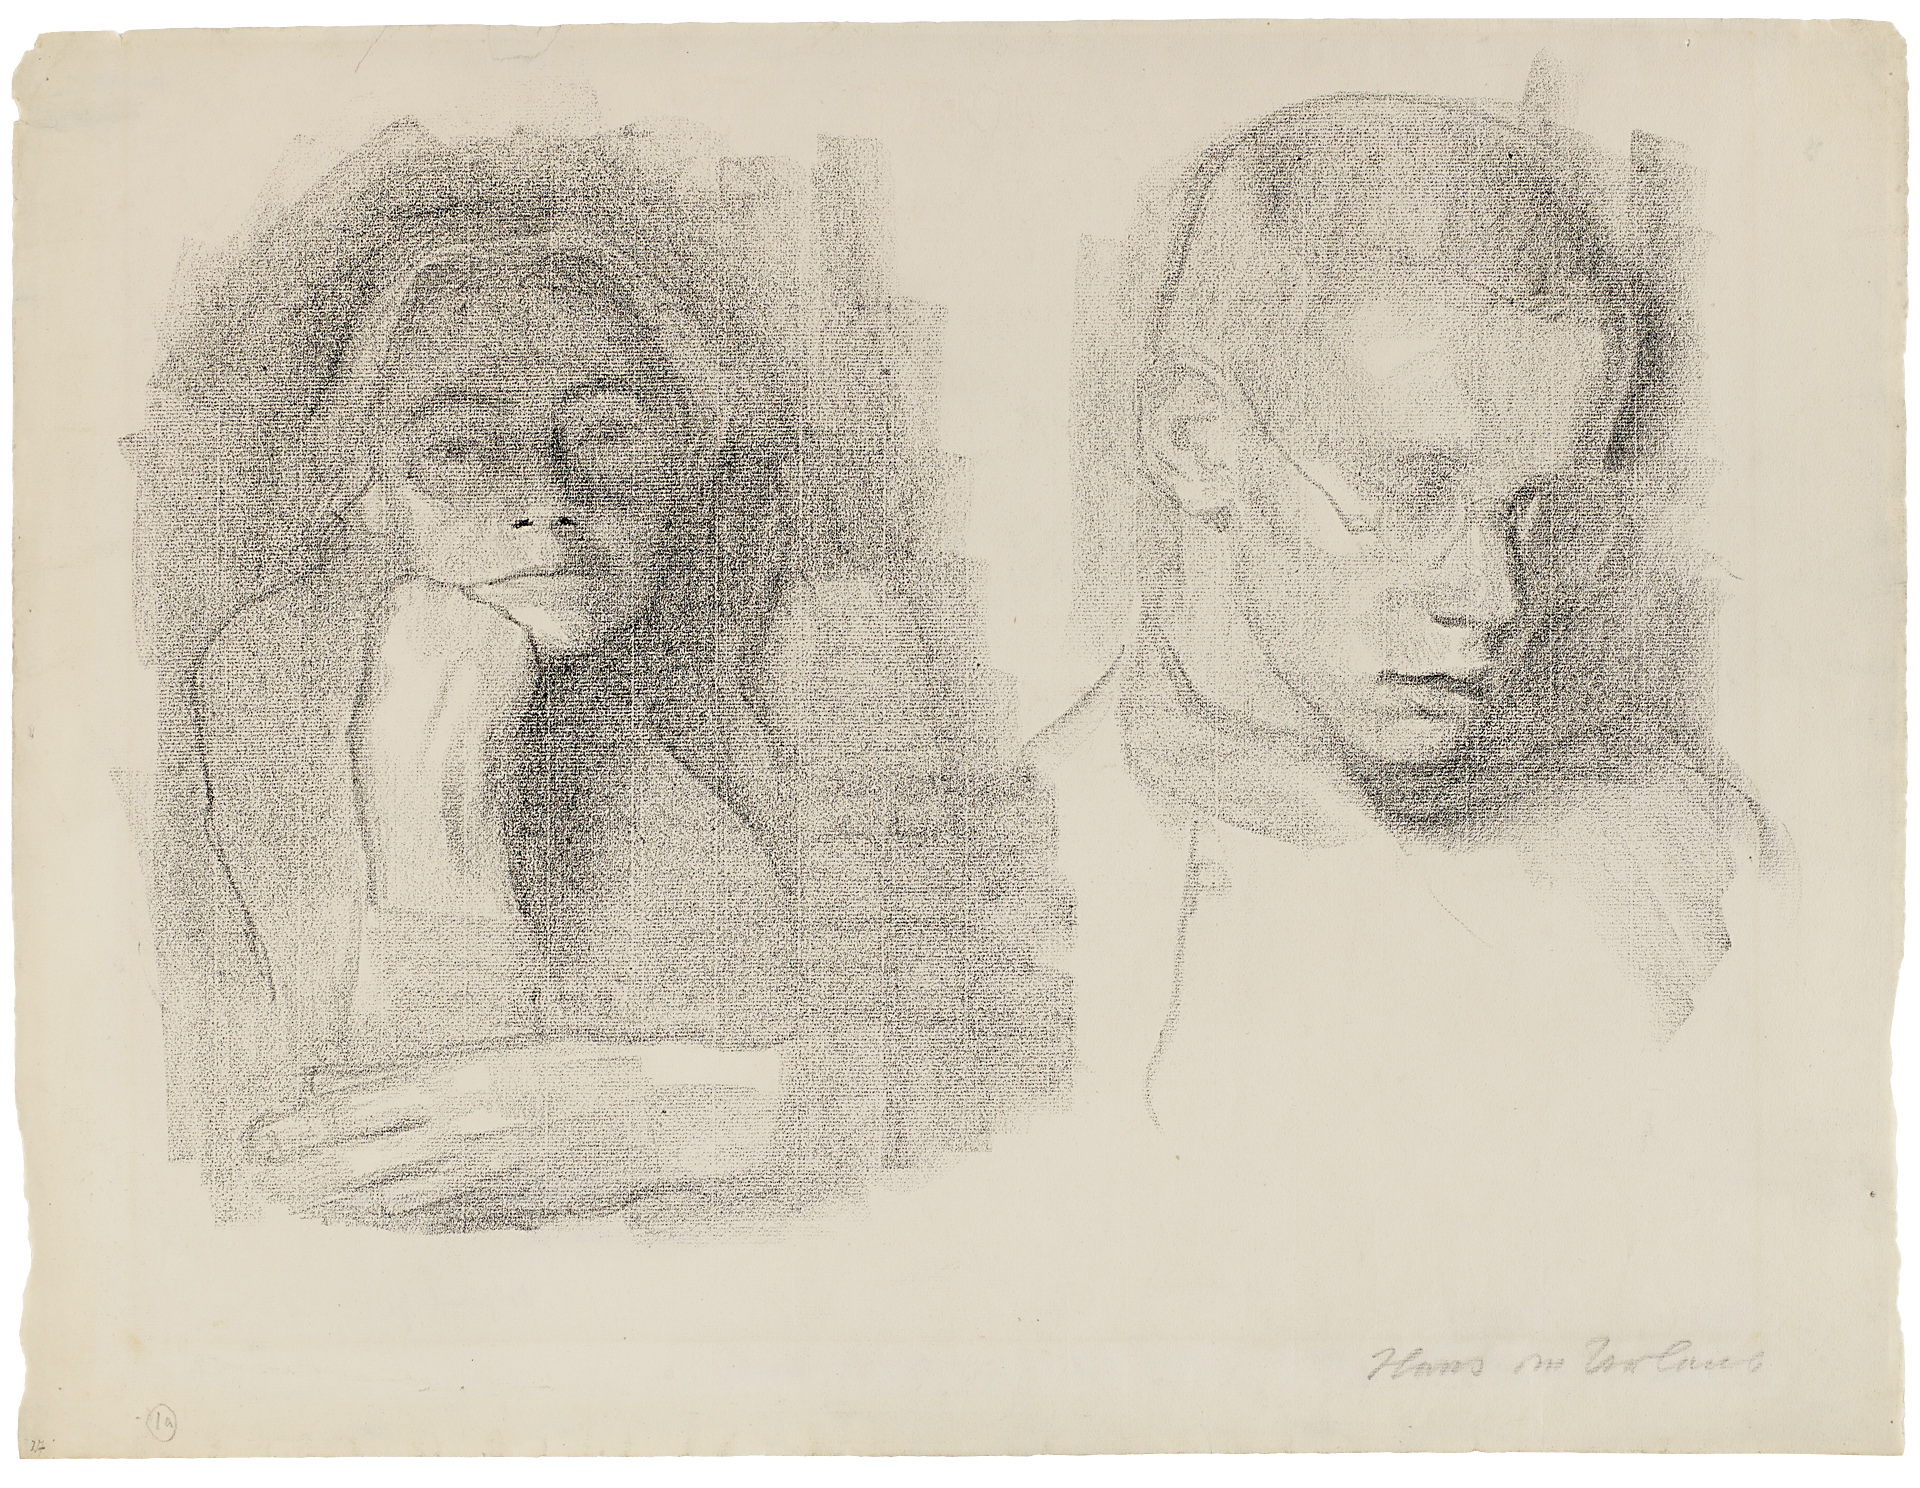 Käthe Kollwitz, Self-portrait with her Son Hans, 1914-1916, black crayon on Ingres paper, NT 732, Cologne Kollwitz Collection © Käthe Kollwitz Museum Köln